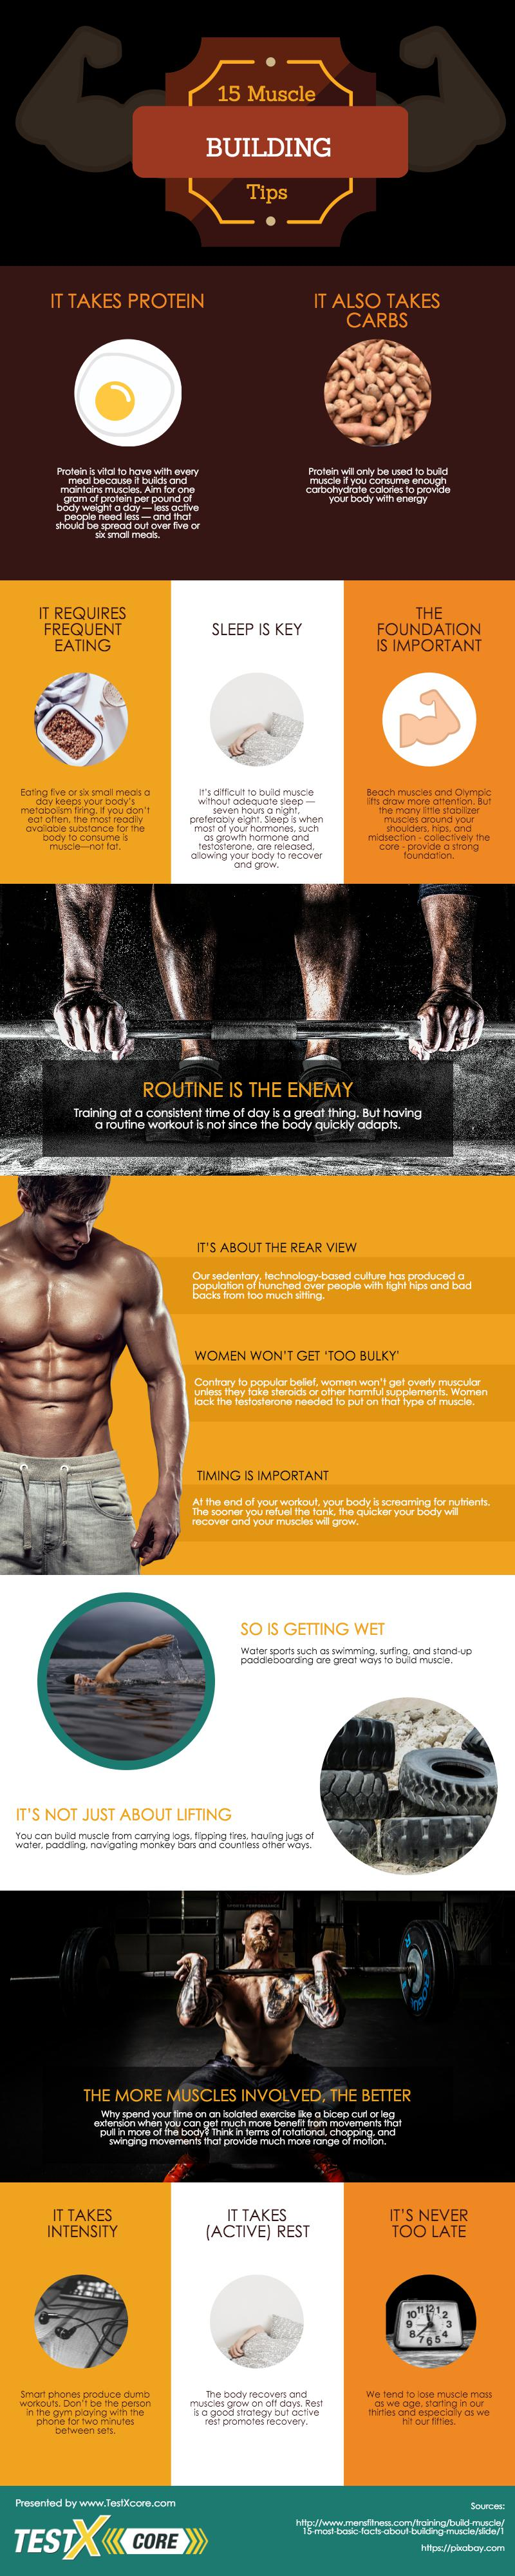 15 Muscle Building Tips